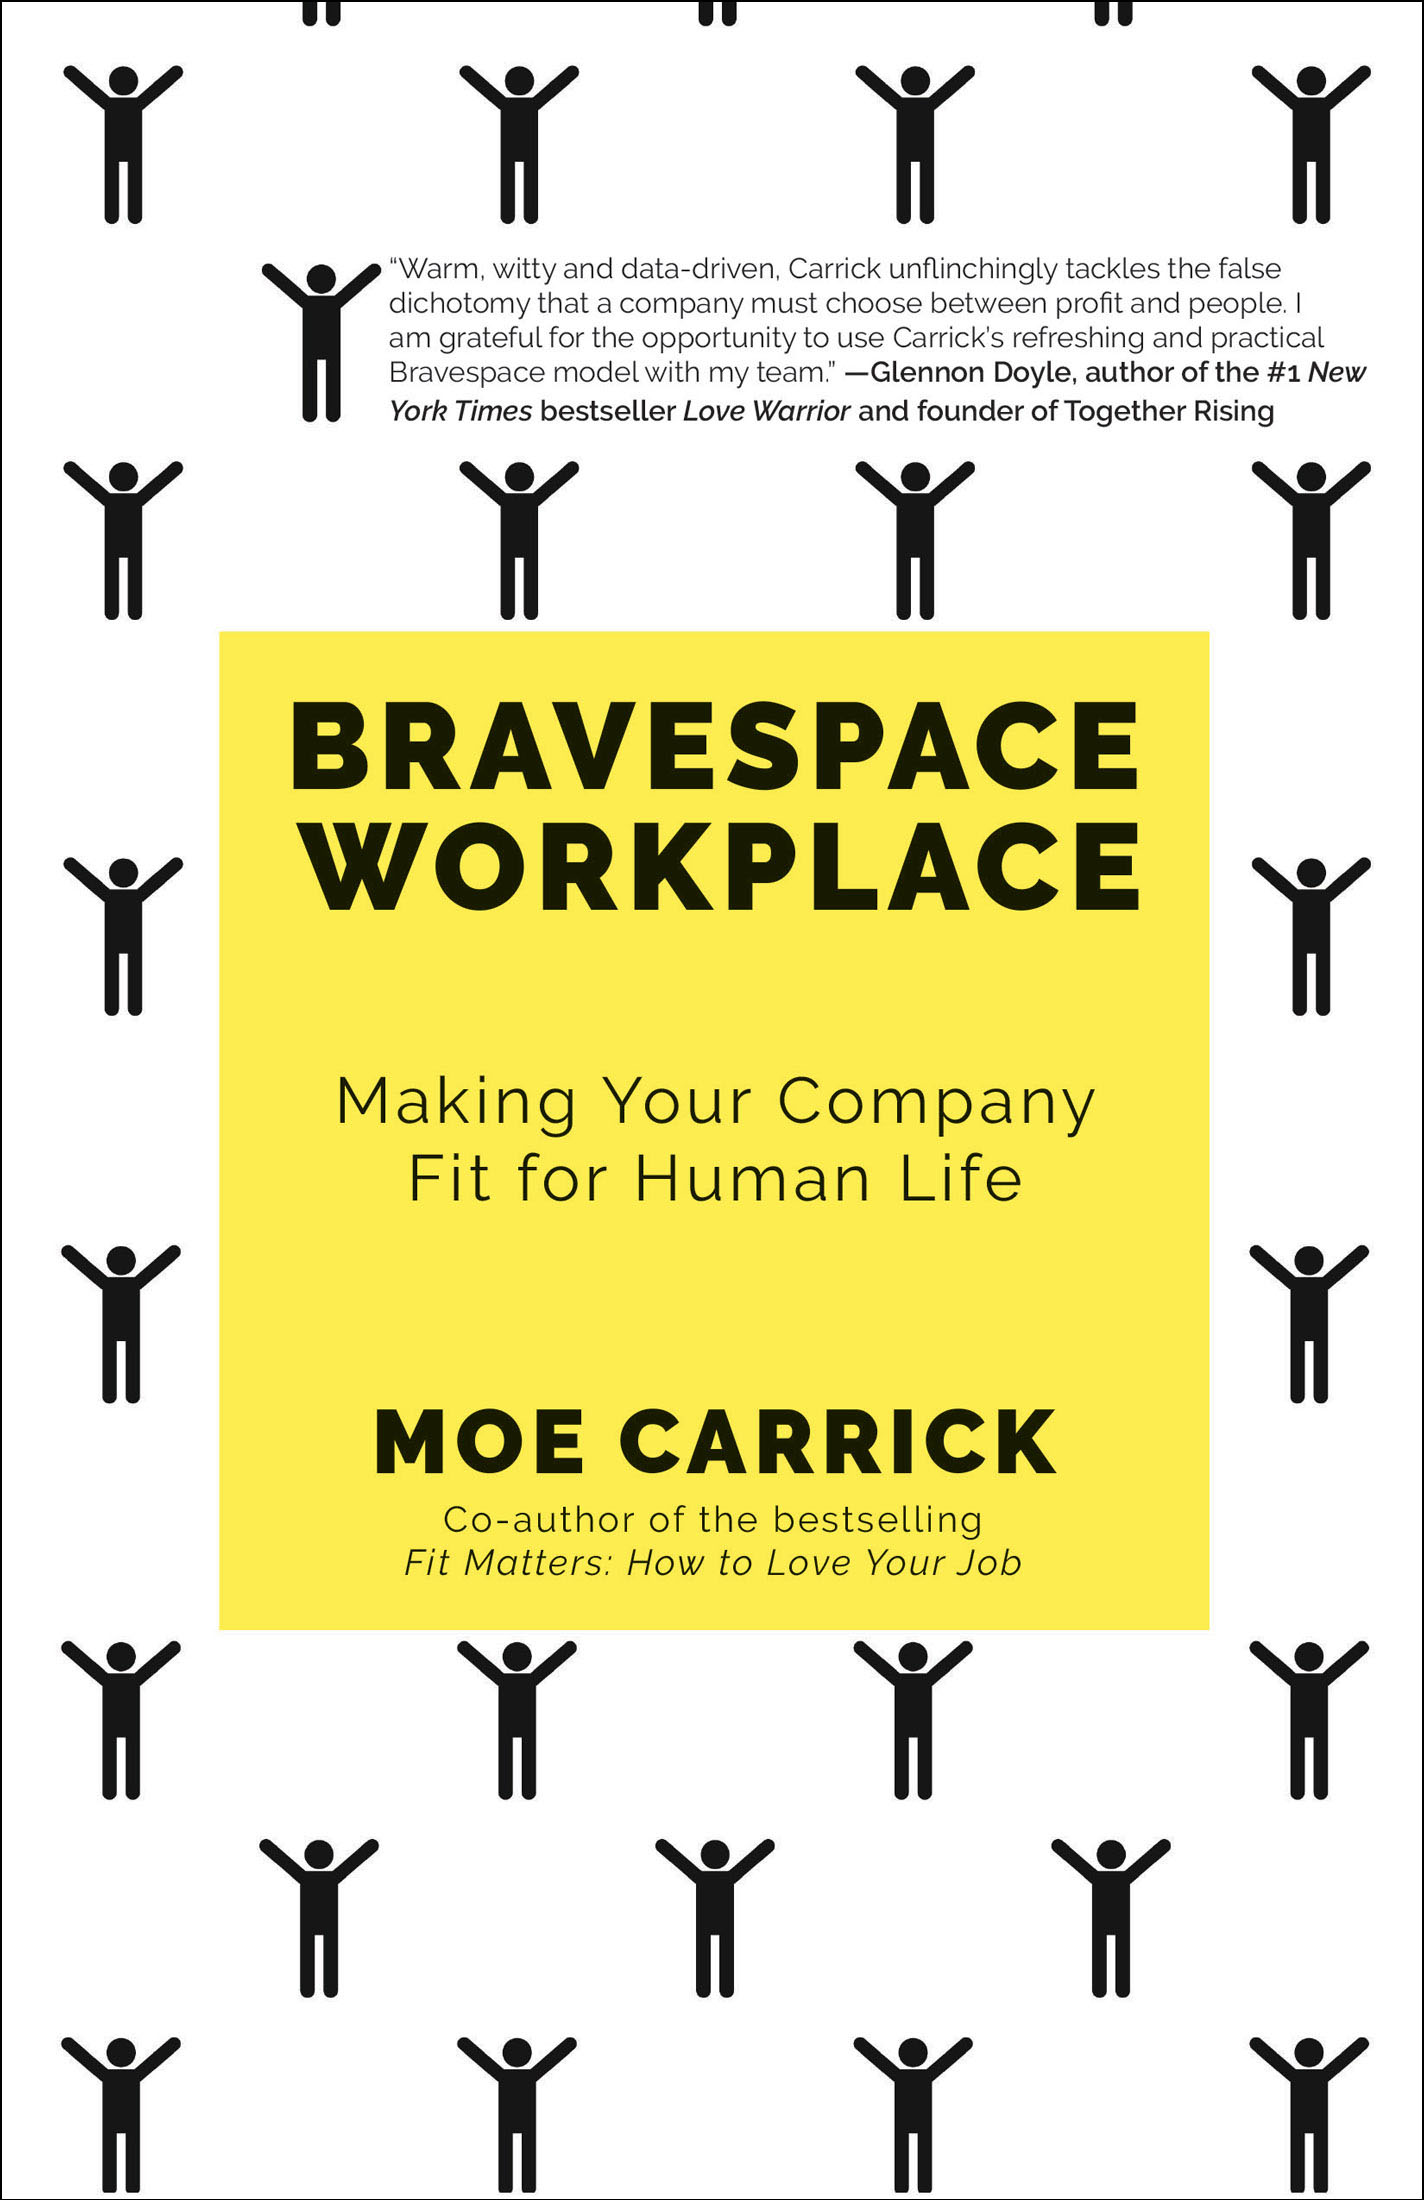 Learn How to Build a Healthy Workplace